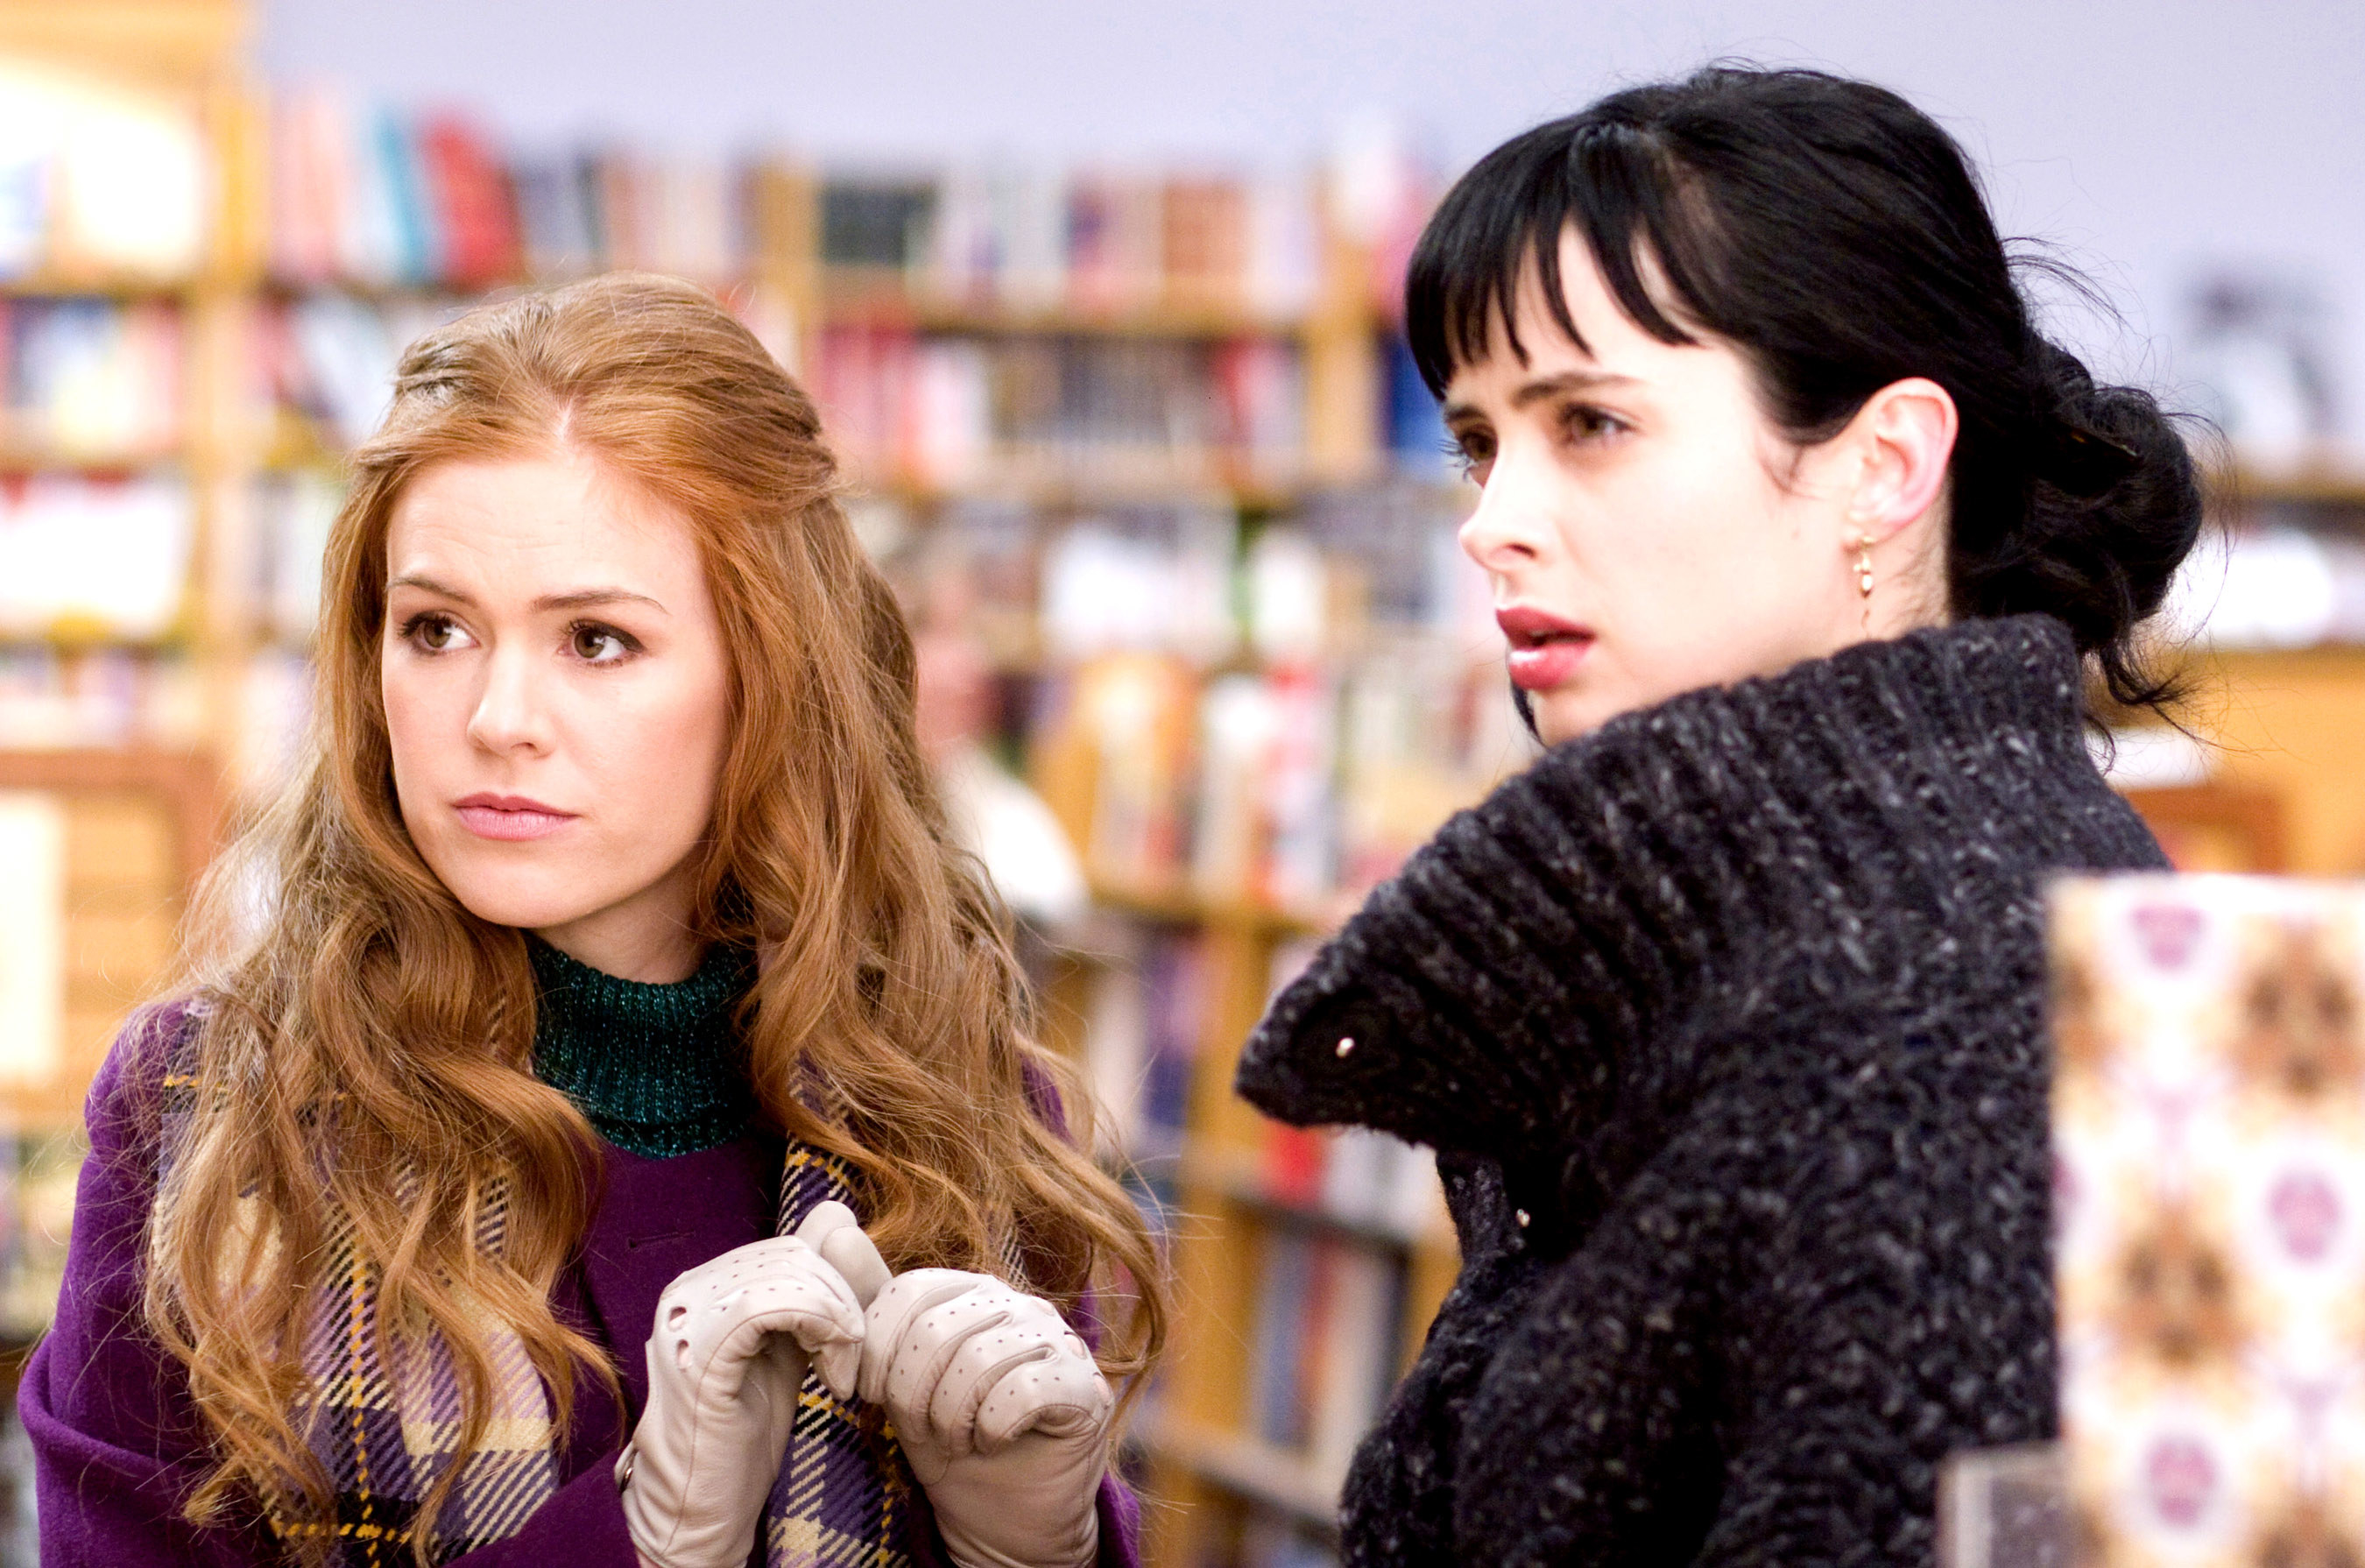 Isla Fisher and Krysten Ritter look concerned.